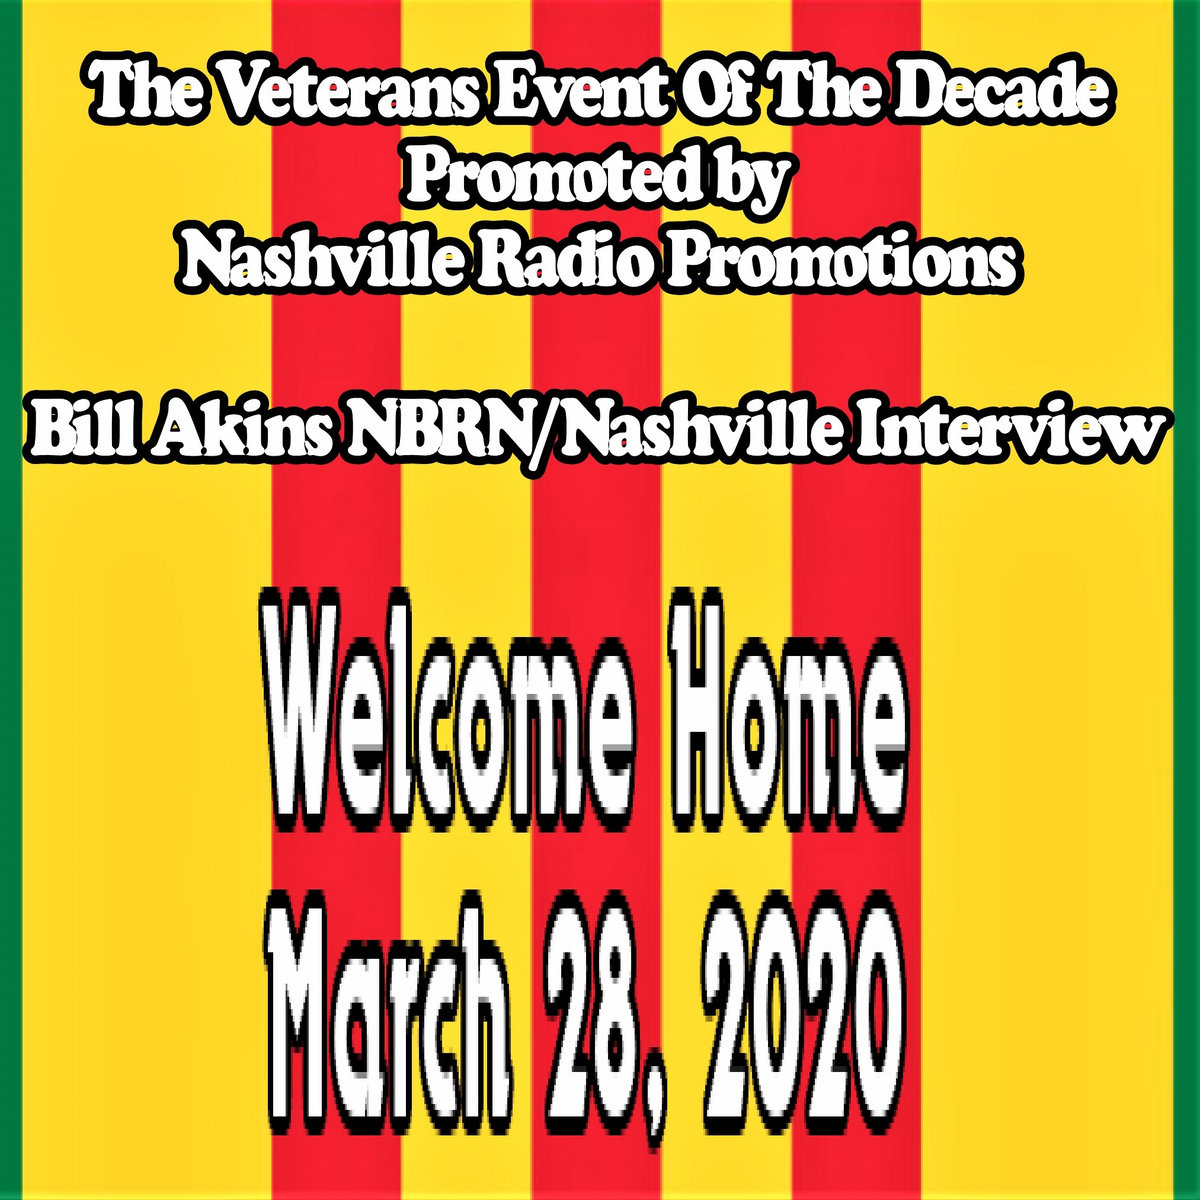 Welcome Home 2020.Bill Akins On Nbrn For Welcome Home 2020 Colt Records